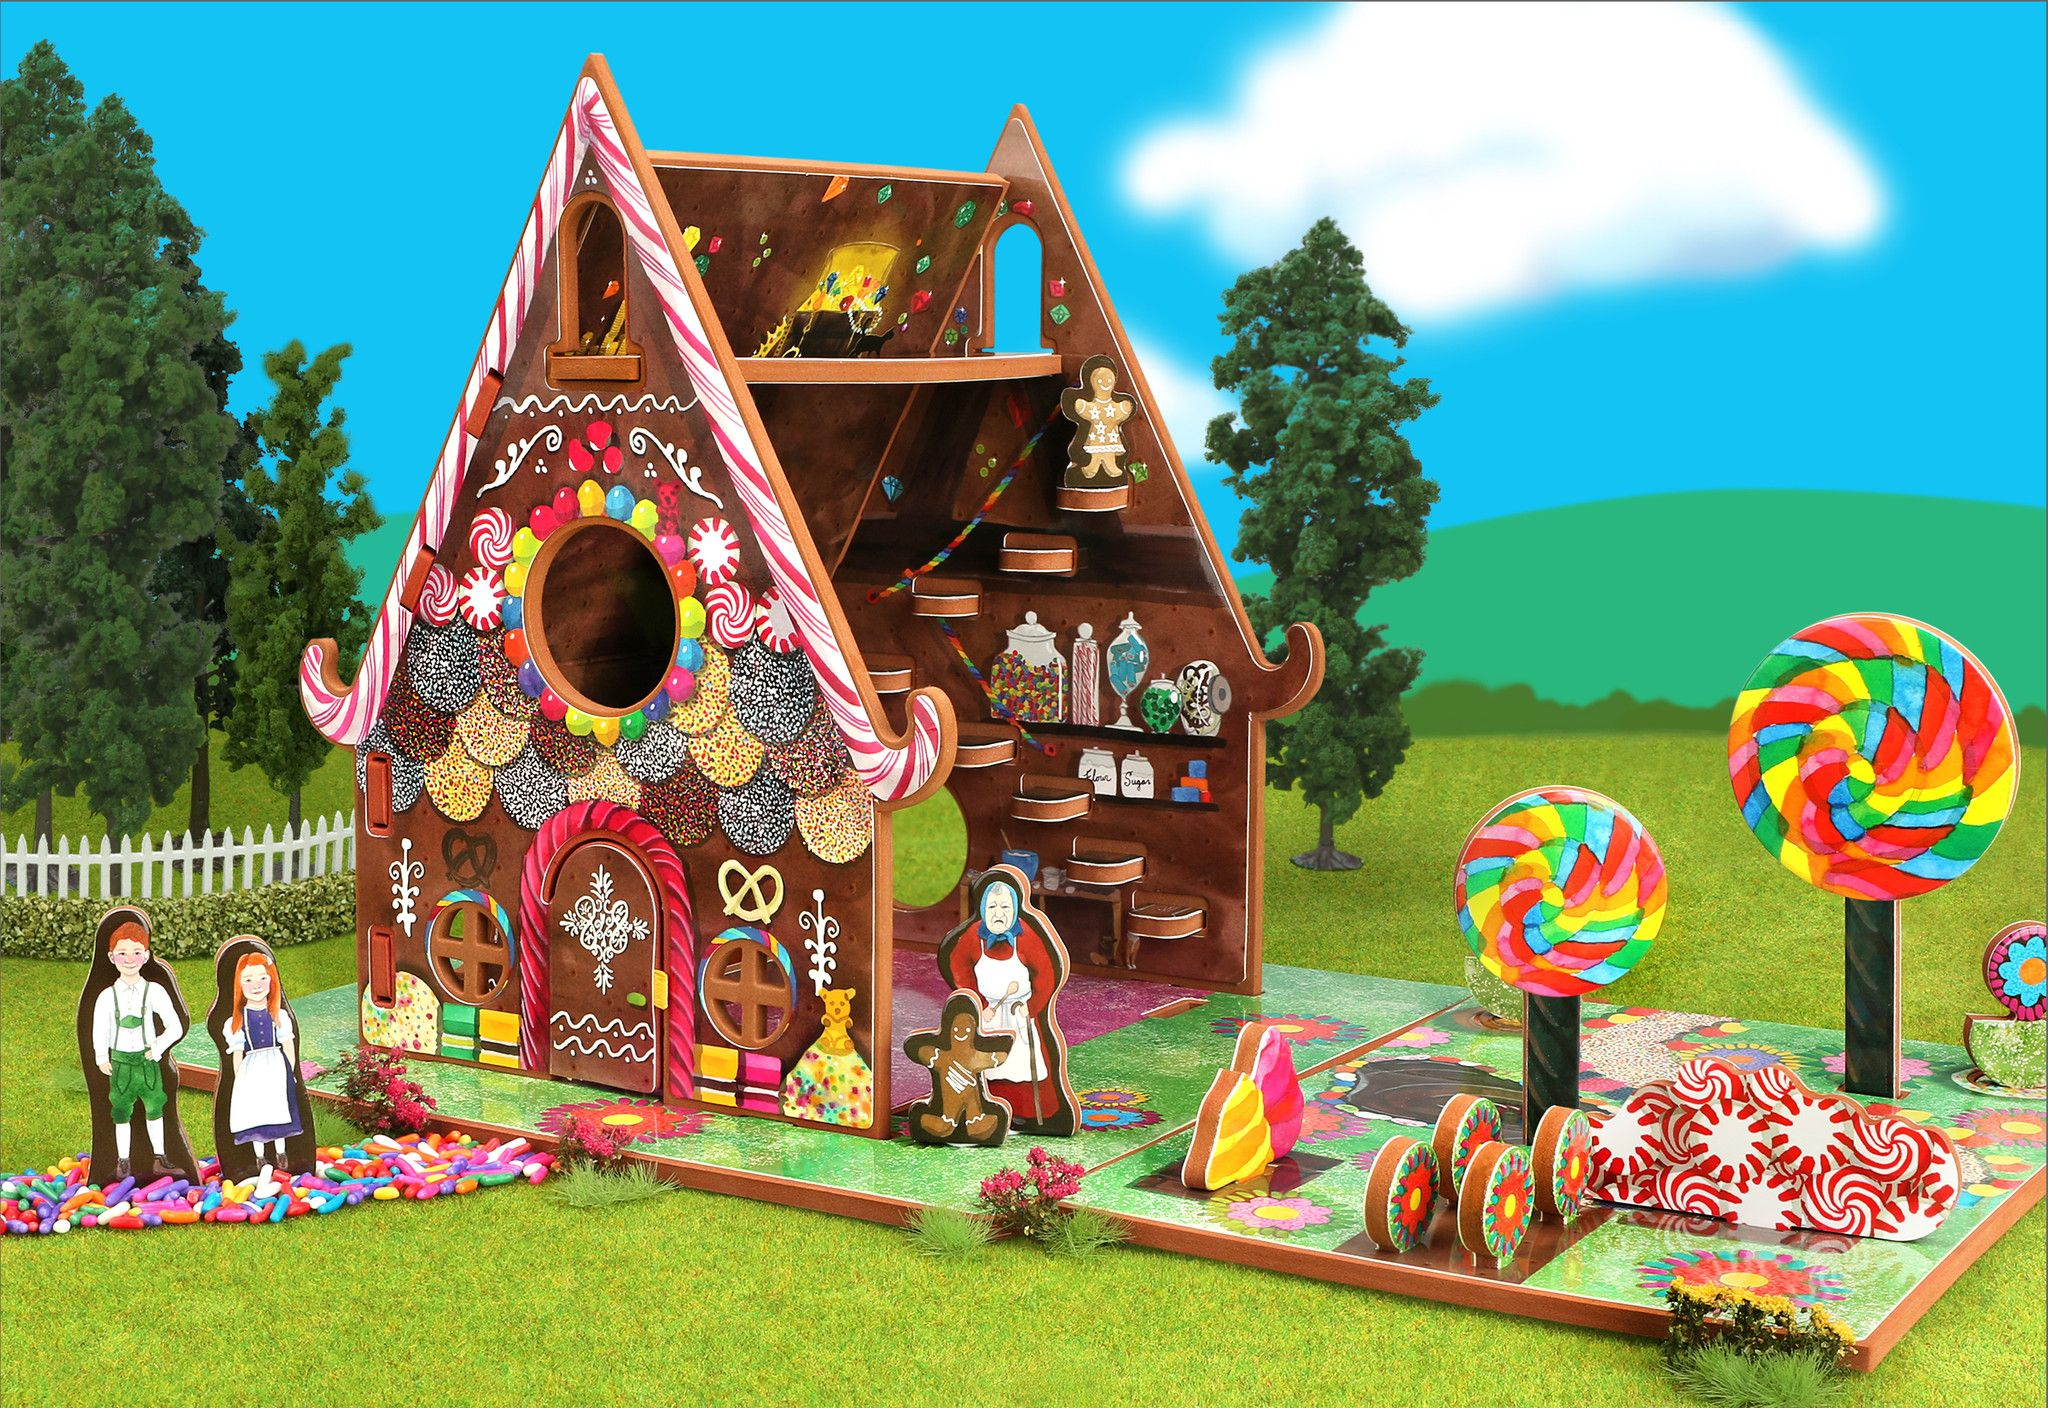 Hansel, Gretel and the Gingerbread House / Our Blog